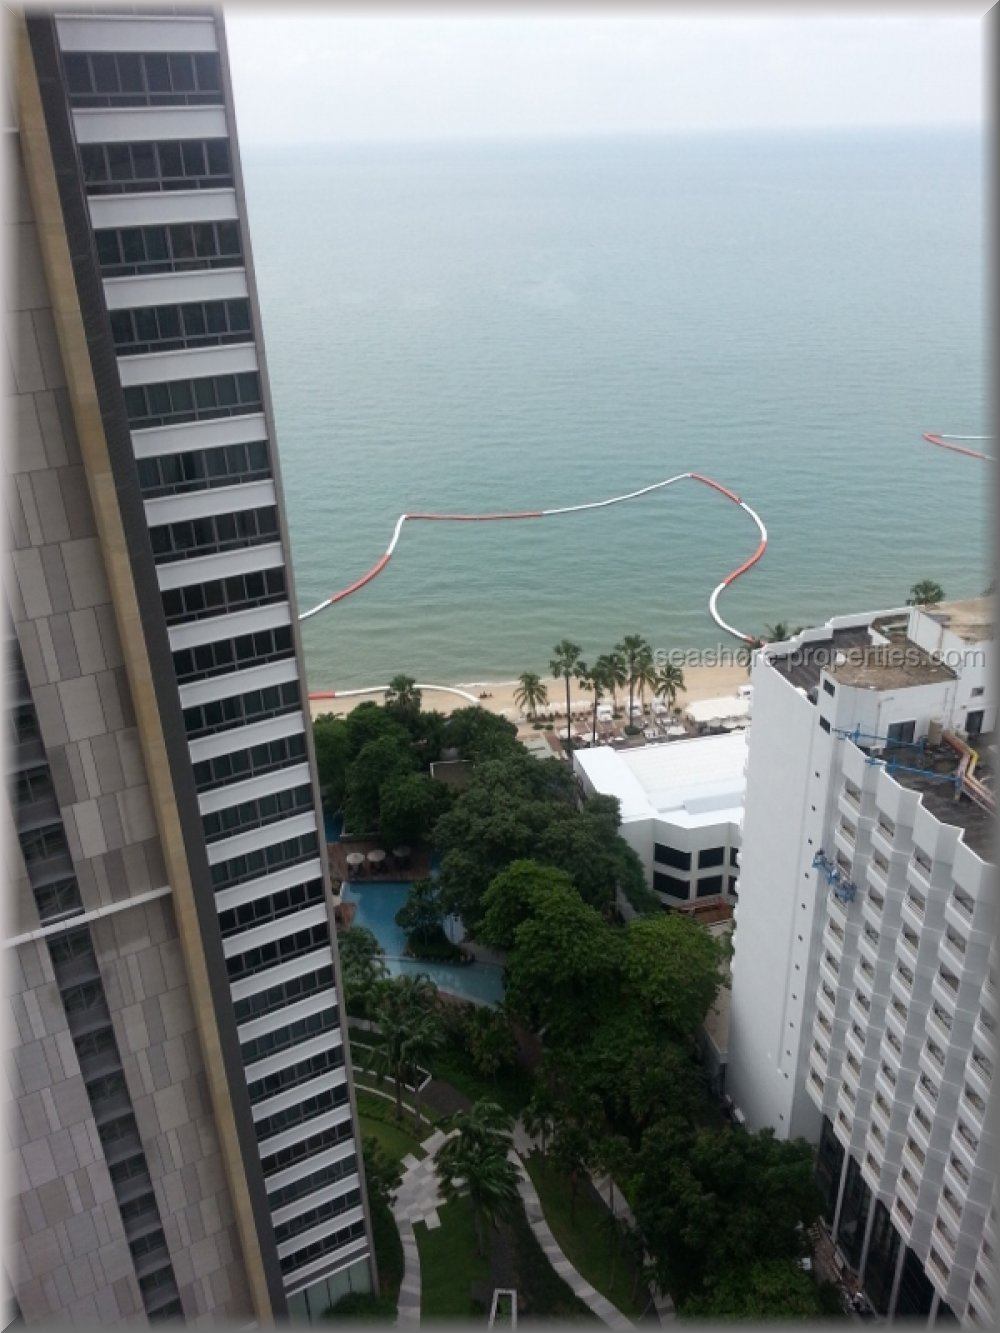 Seashore Properties (Thailand) Co. Ltd. Northpoint Condominium   to rent in Wong Amat Pattaya